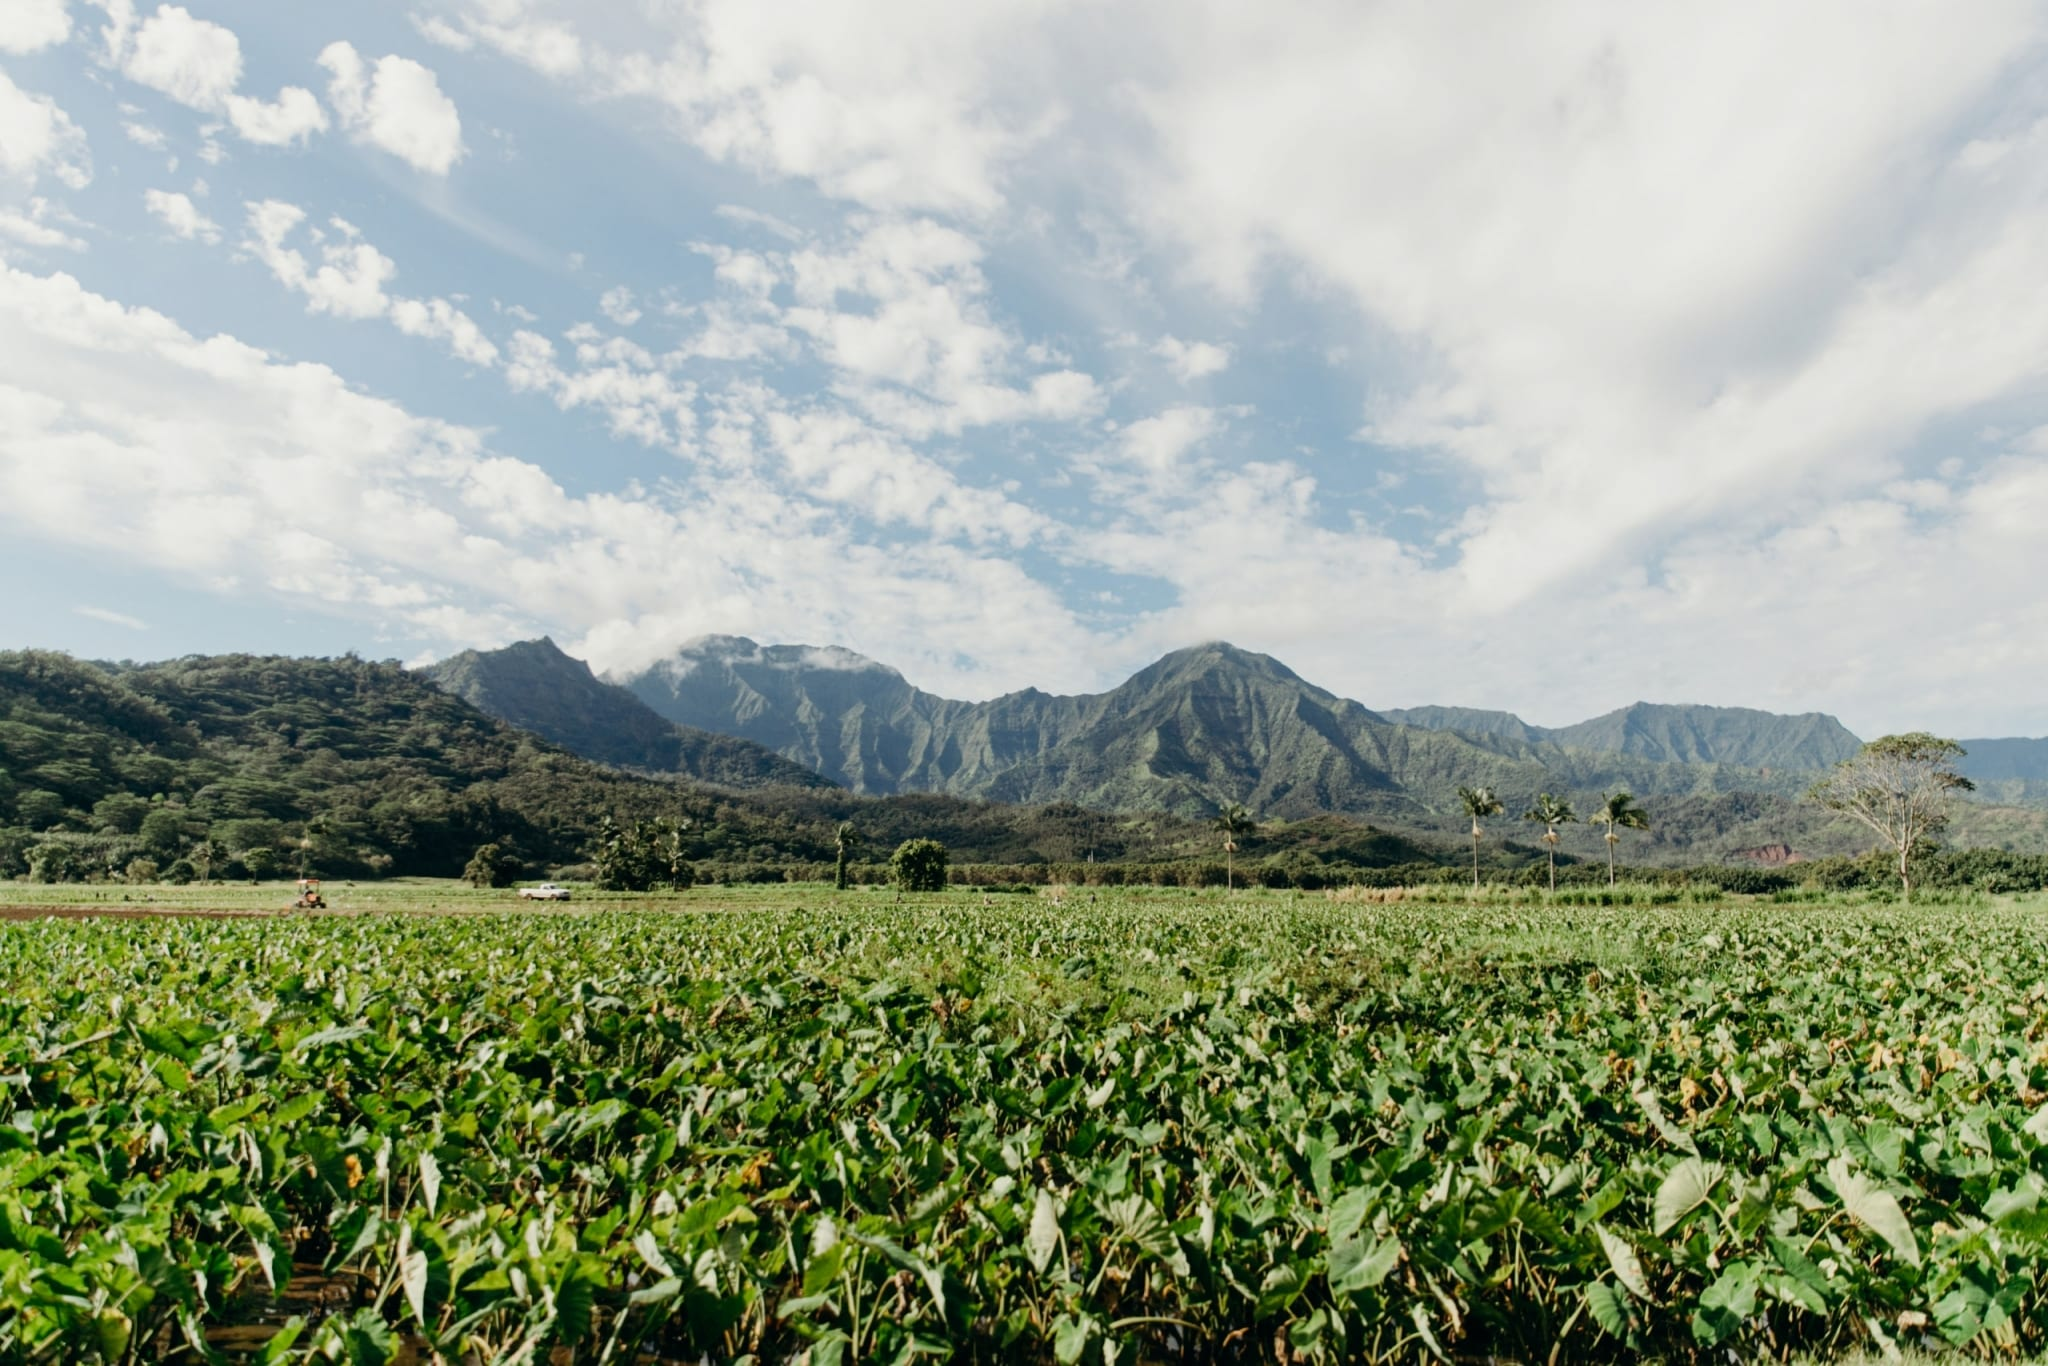 View of Taro Patch and Mountains